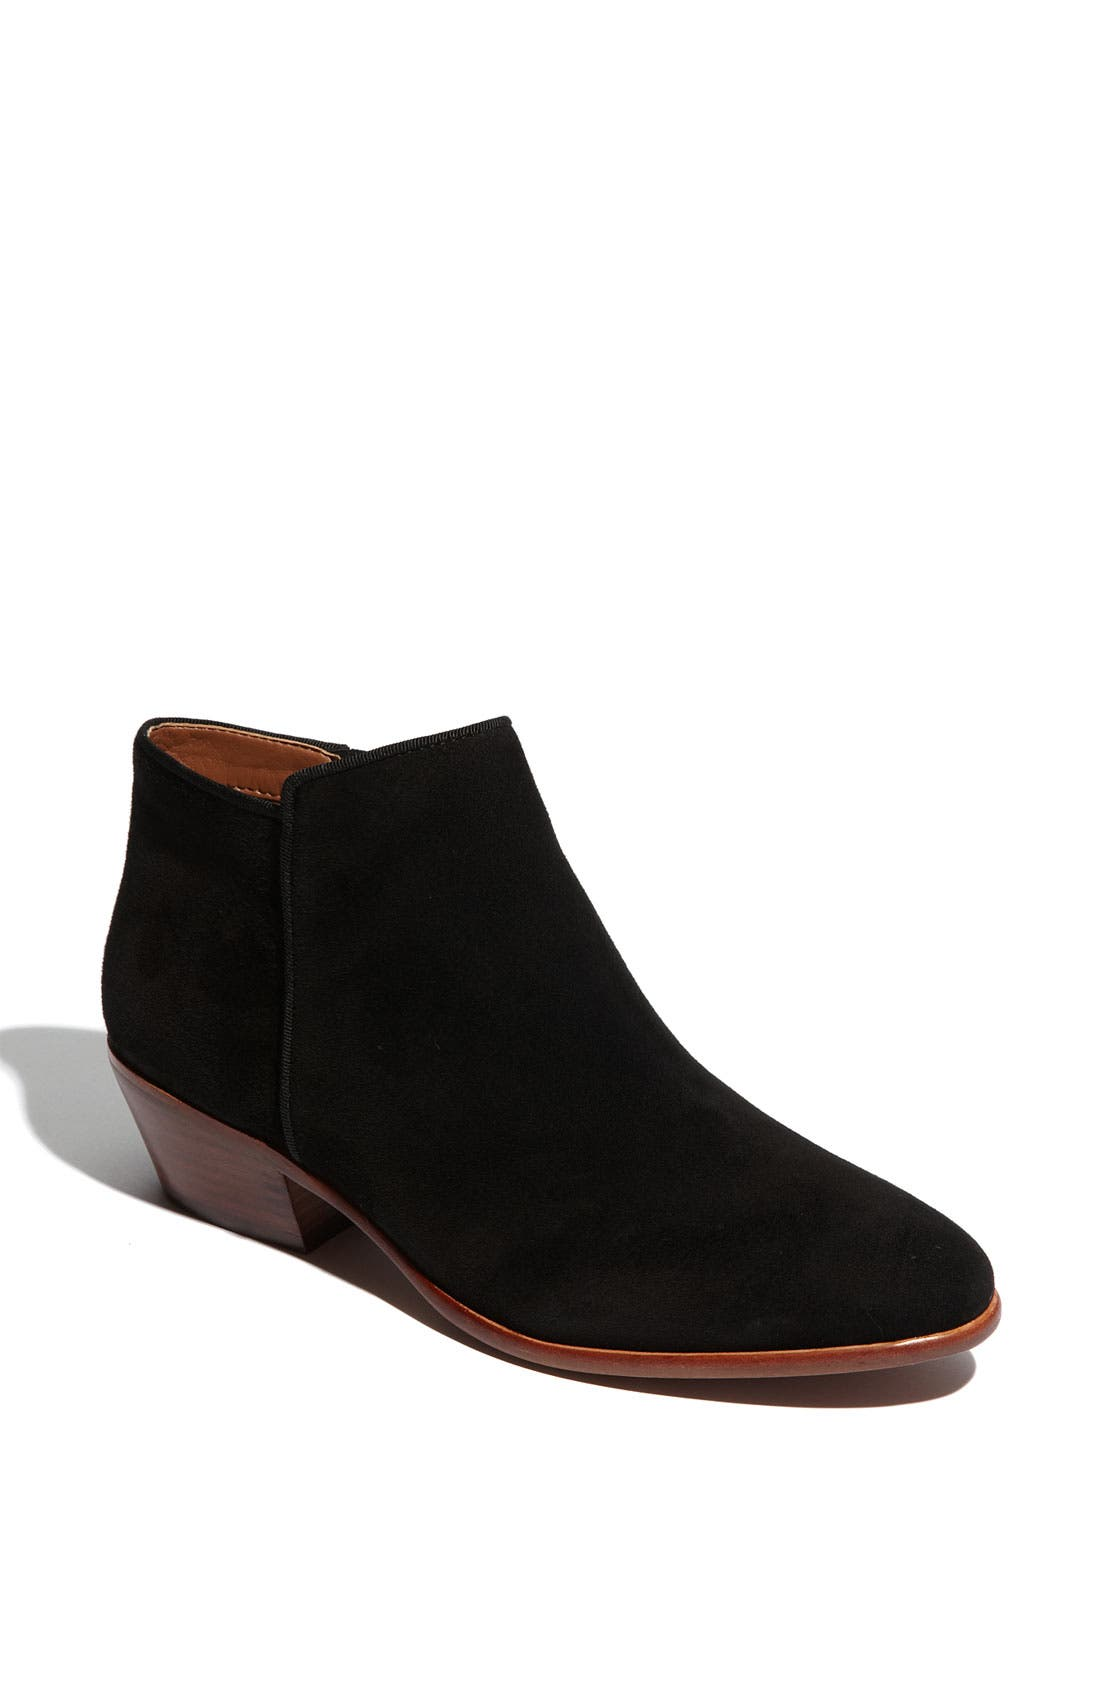 'Petty' ChelseaBoot,                         Main,                         color, BLACK SUEDE